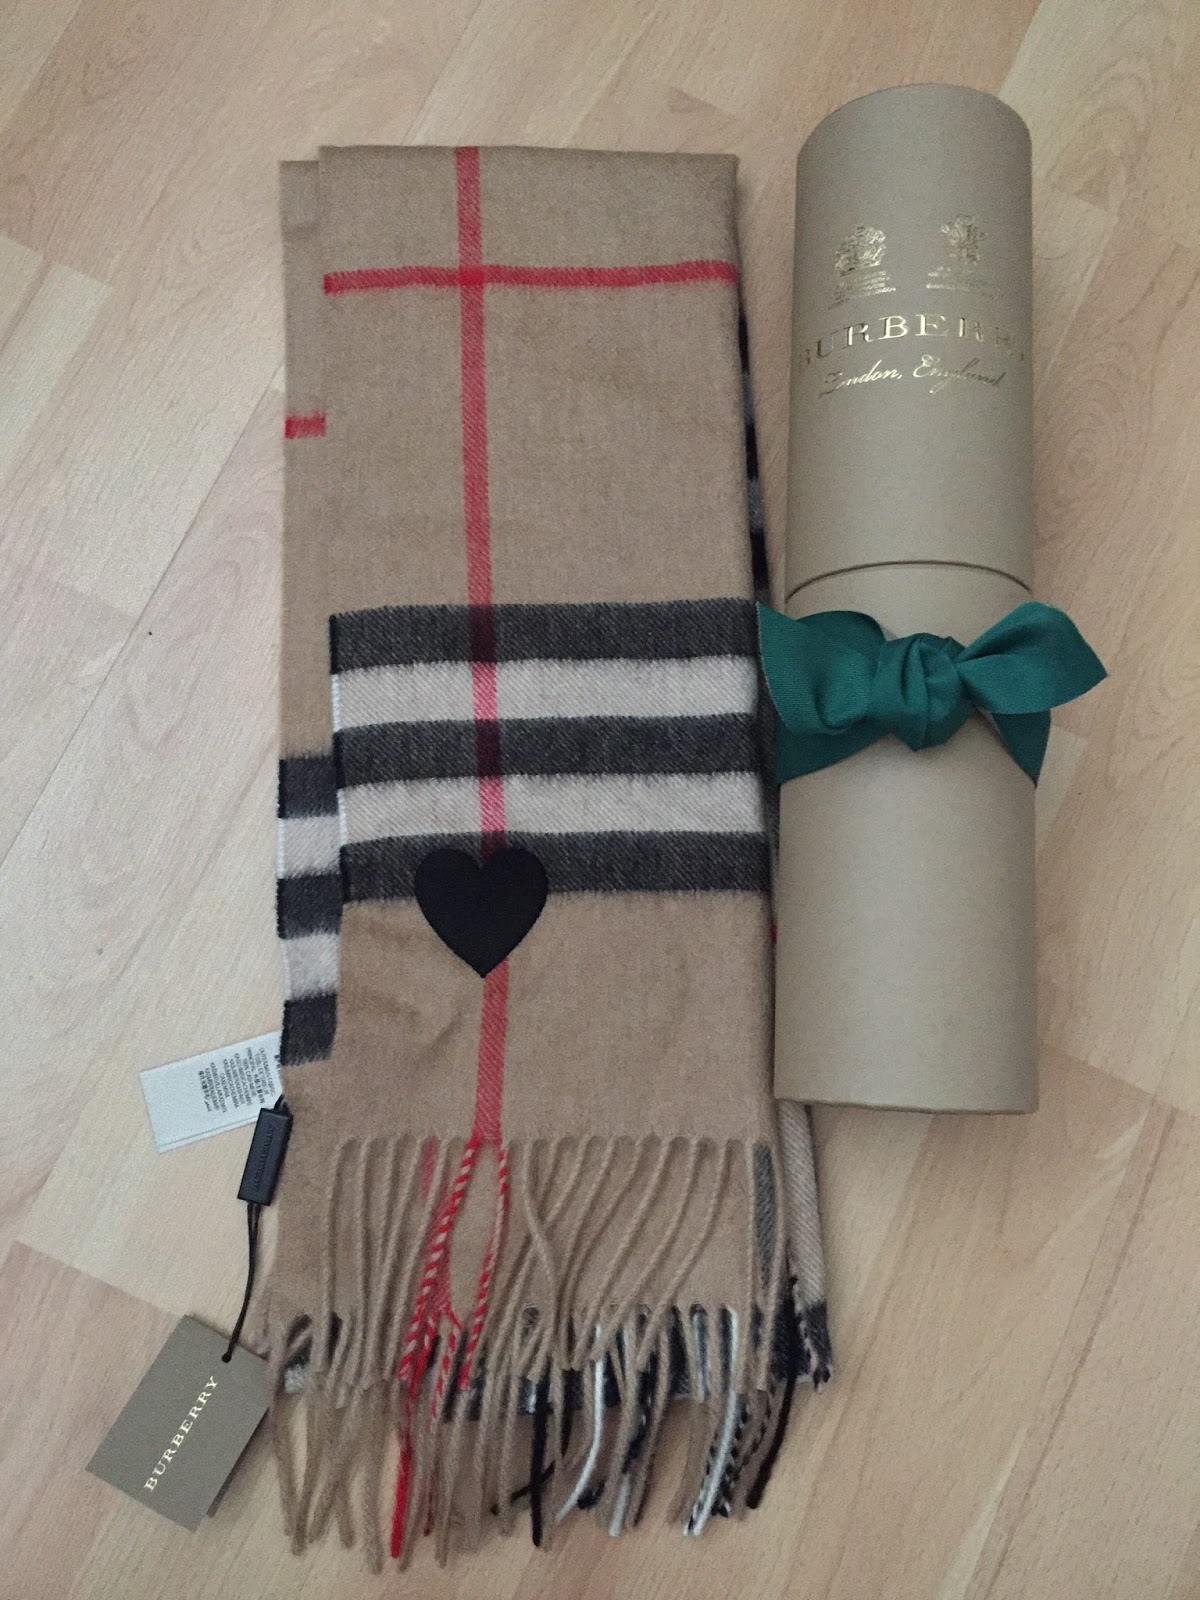 Authentic Burberry Scarf : authentic, burberry, scarf, Itsnina_ox:, Famous, Burberry, Scarf, Recognise, Fake.